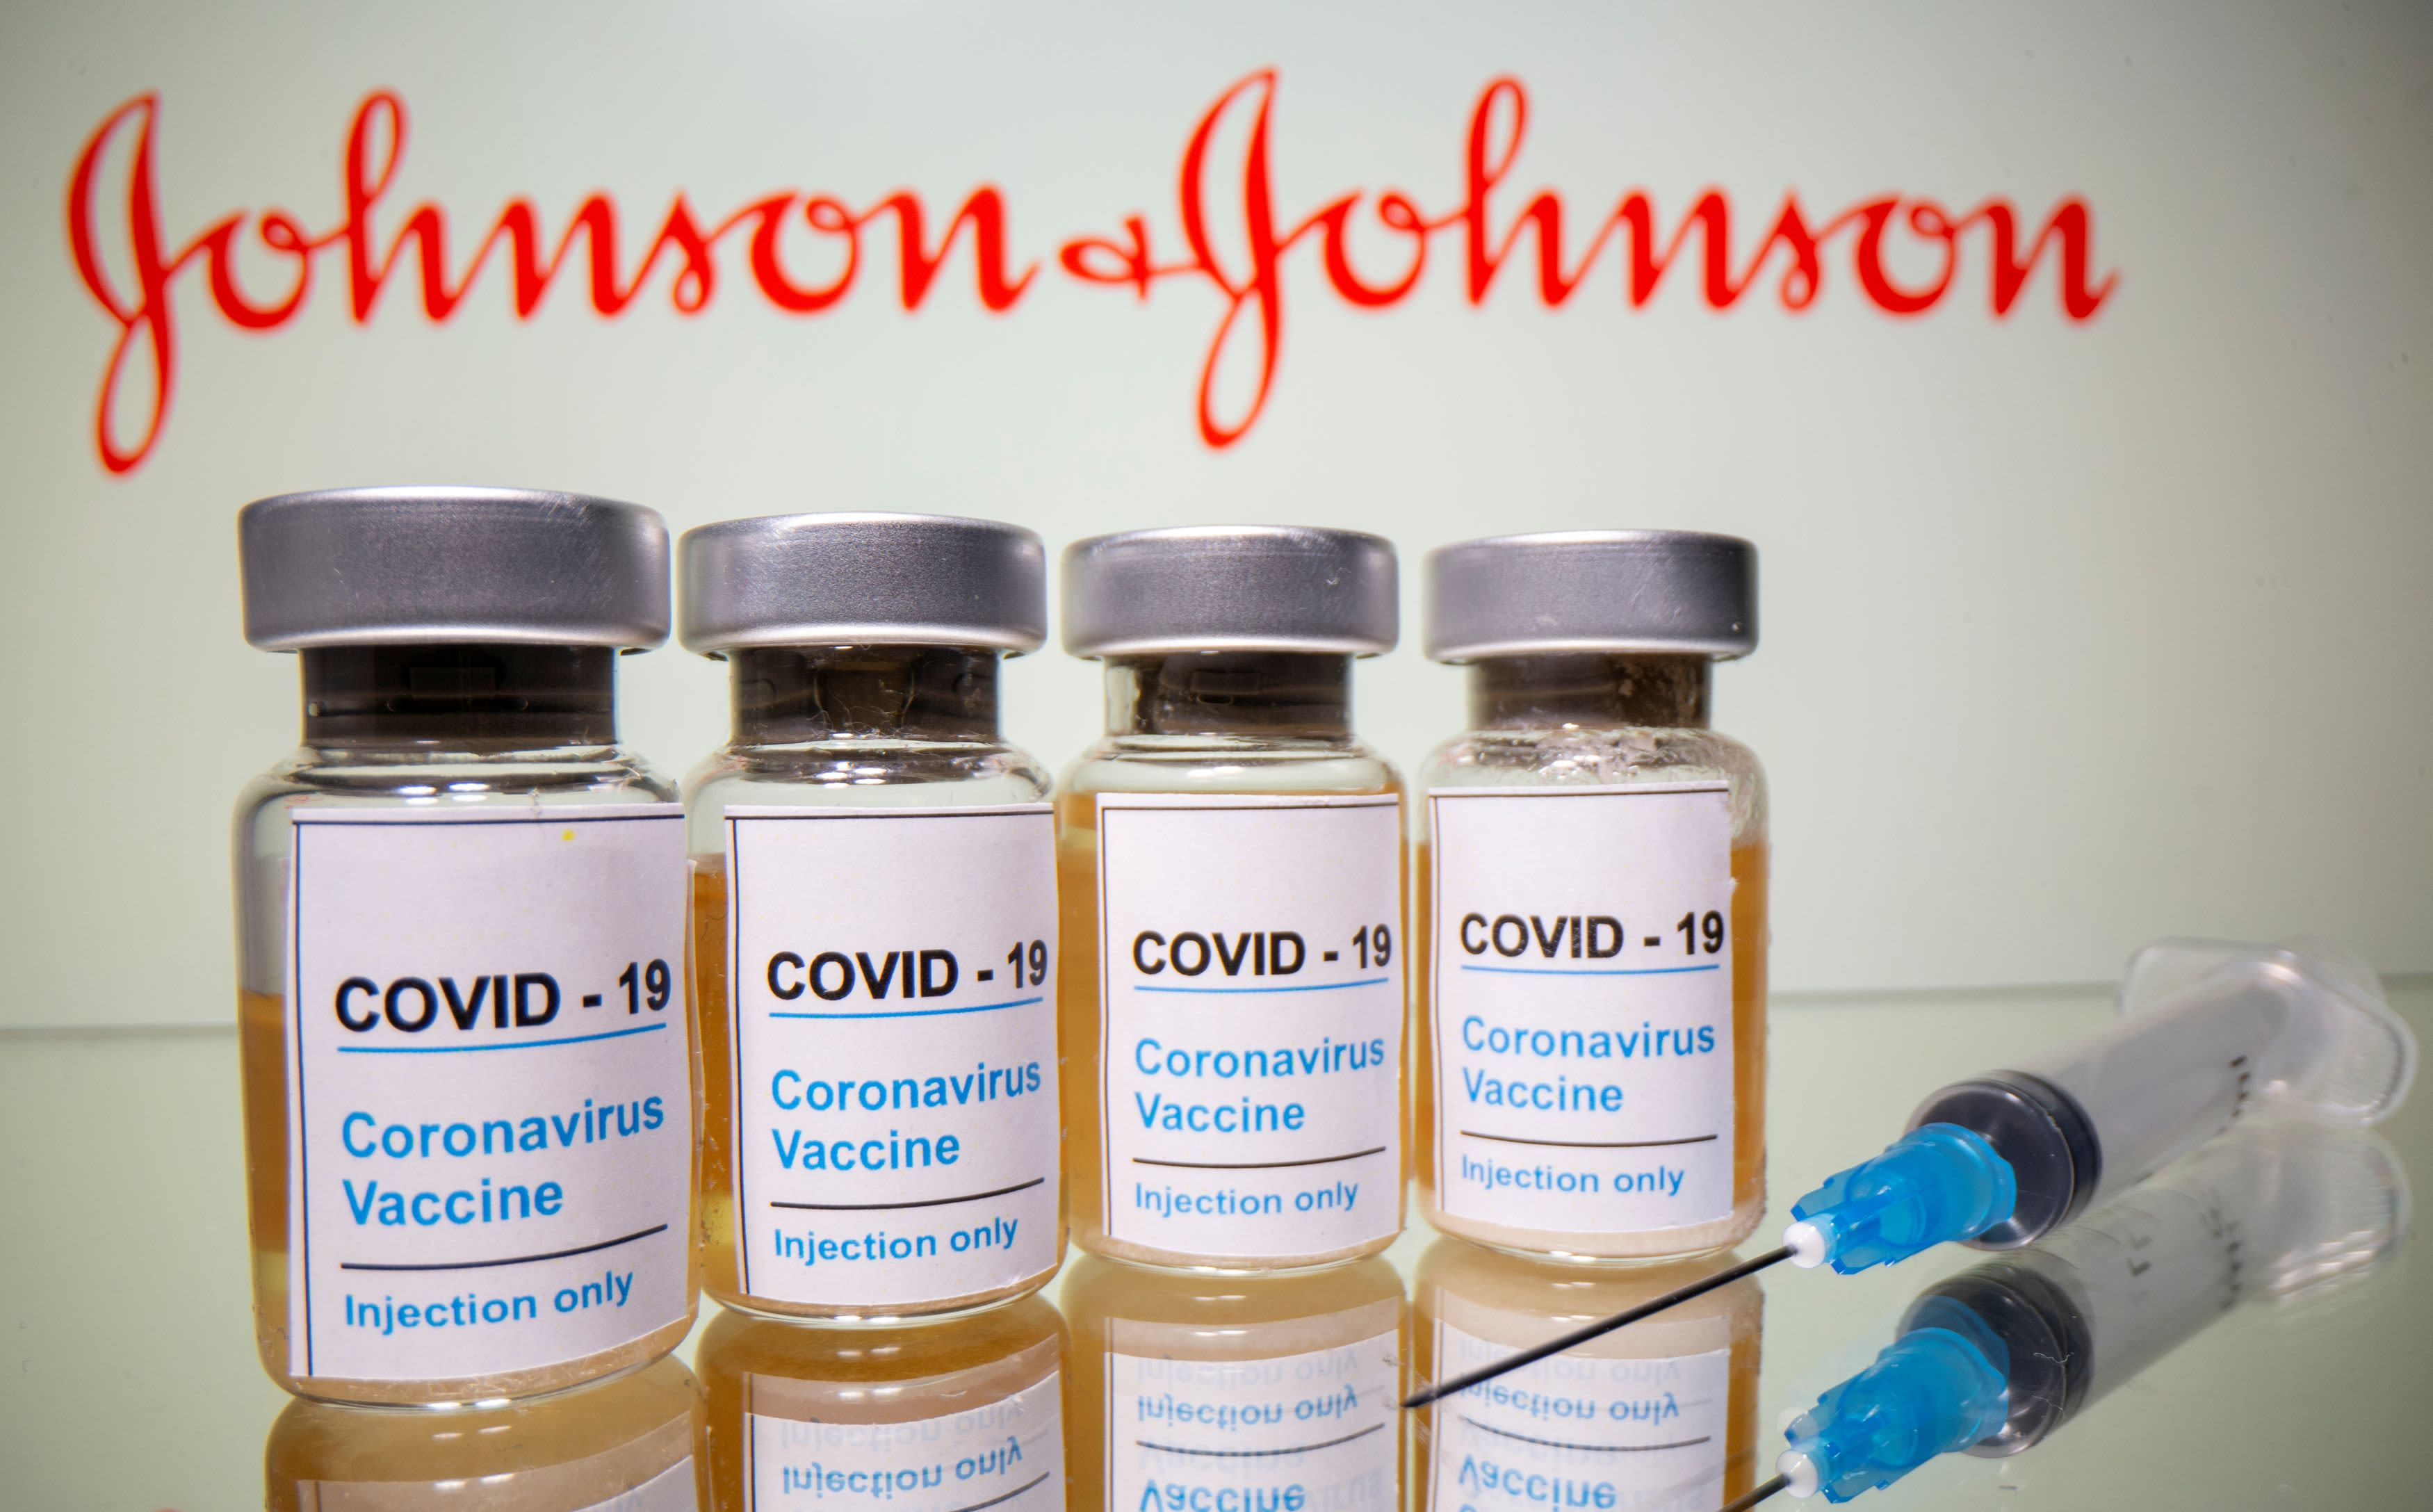 CDC panel recommends use of J&J's single-shot Covid vaccine